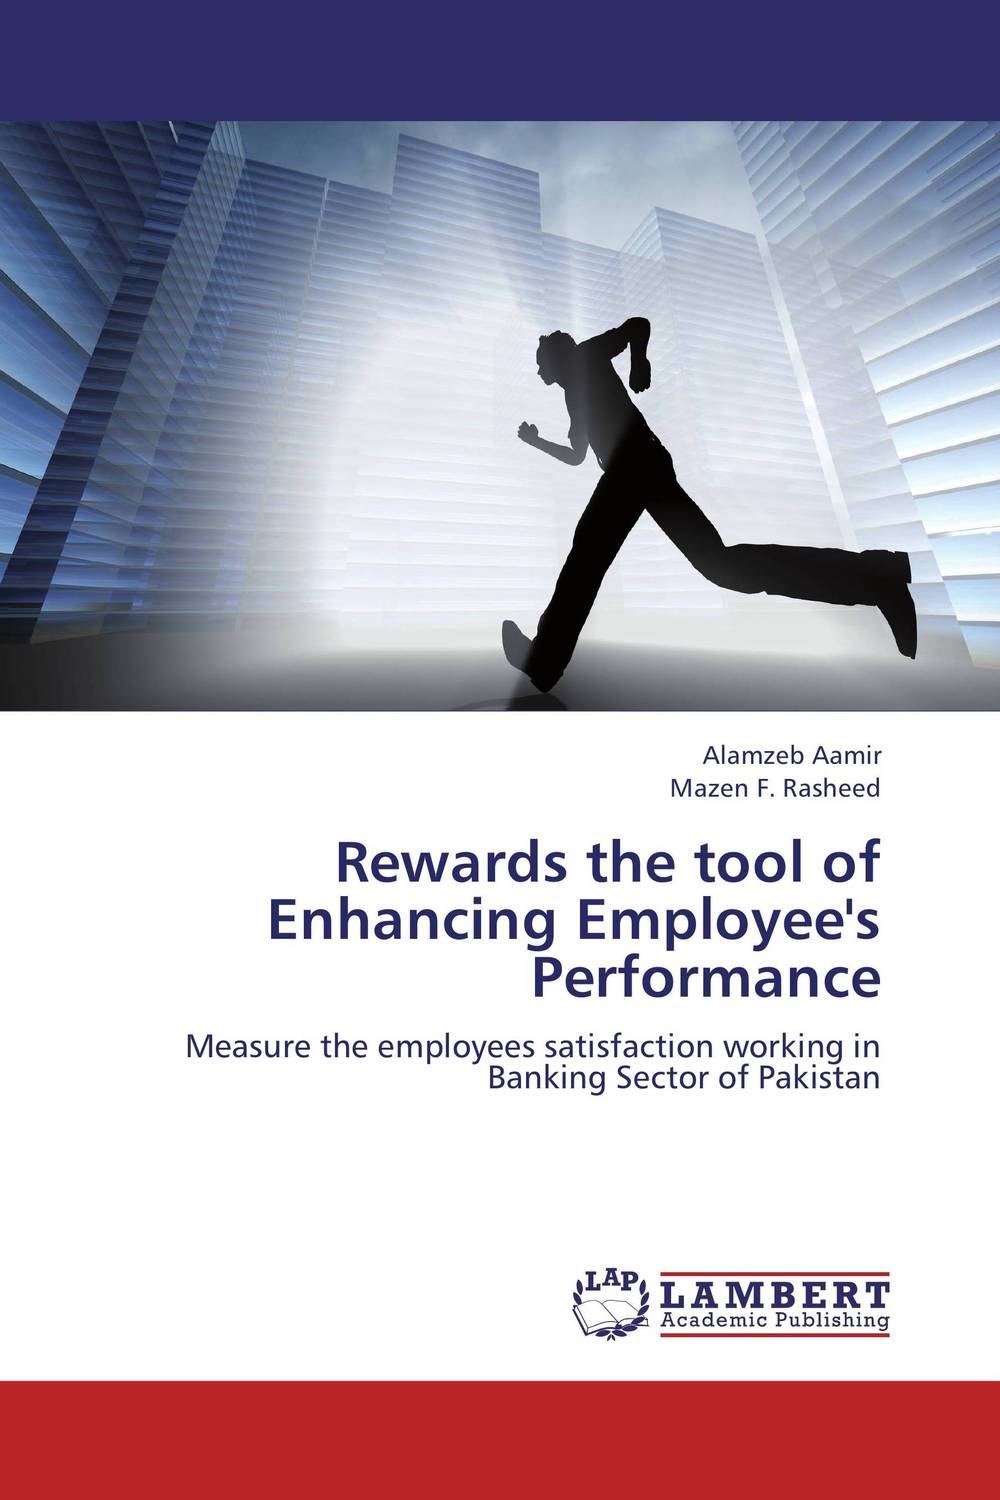 Rewards the tool of Enhancing Employee's Performance driven to distraction